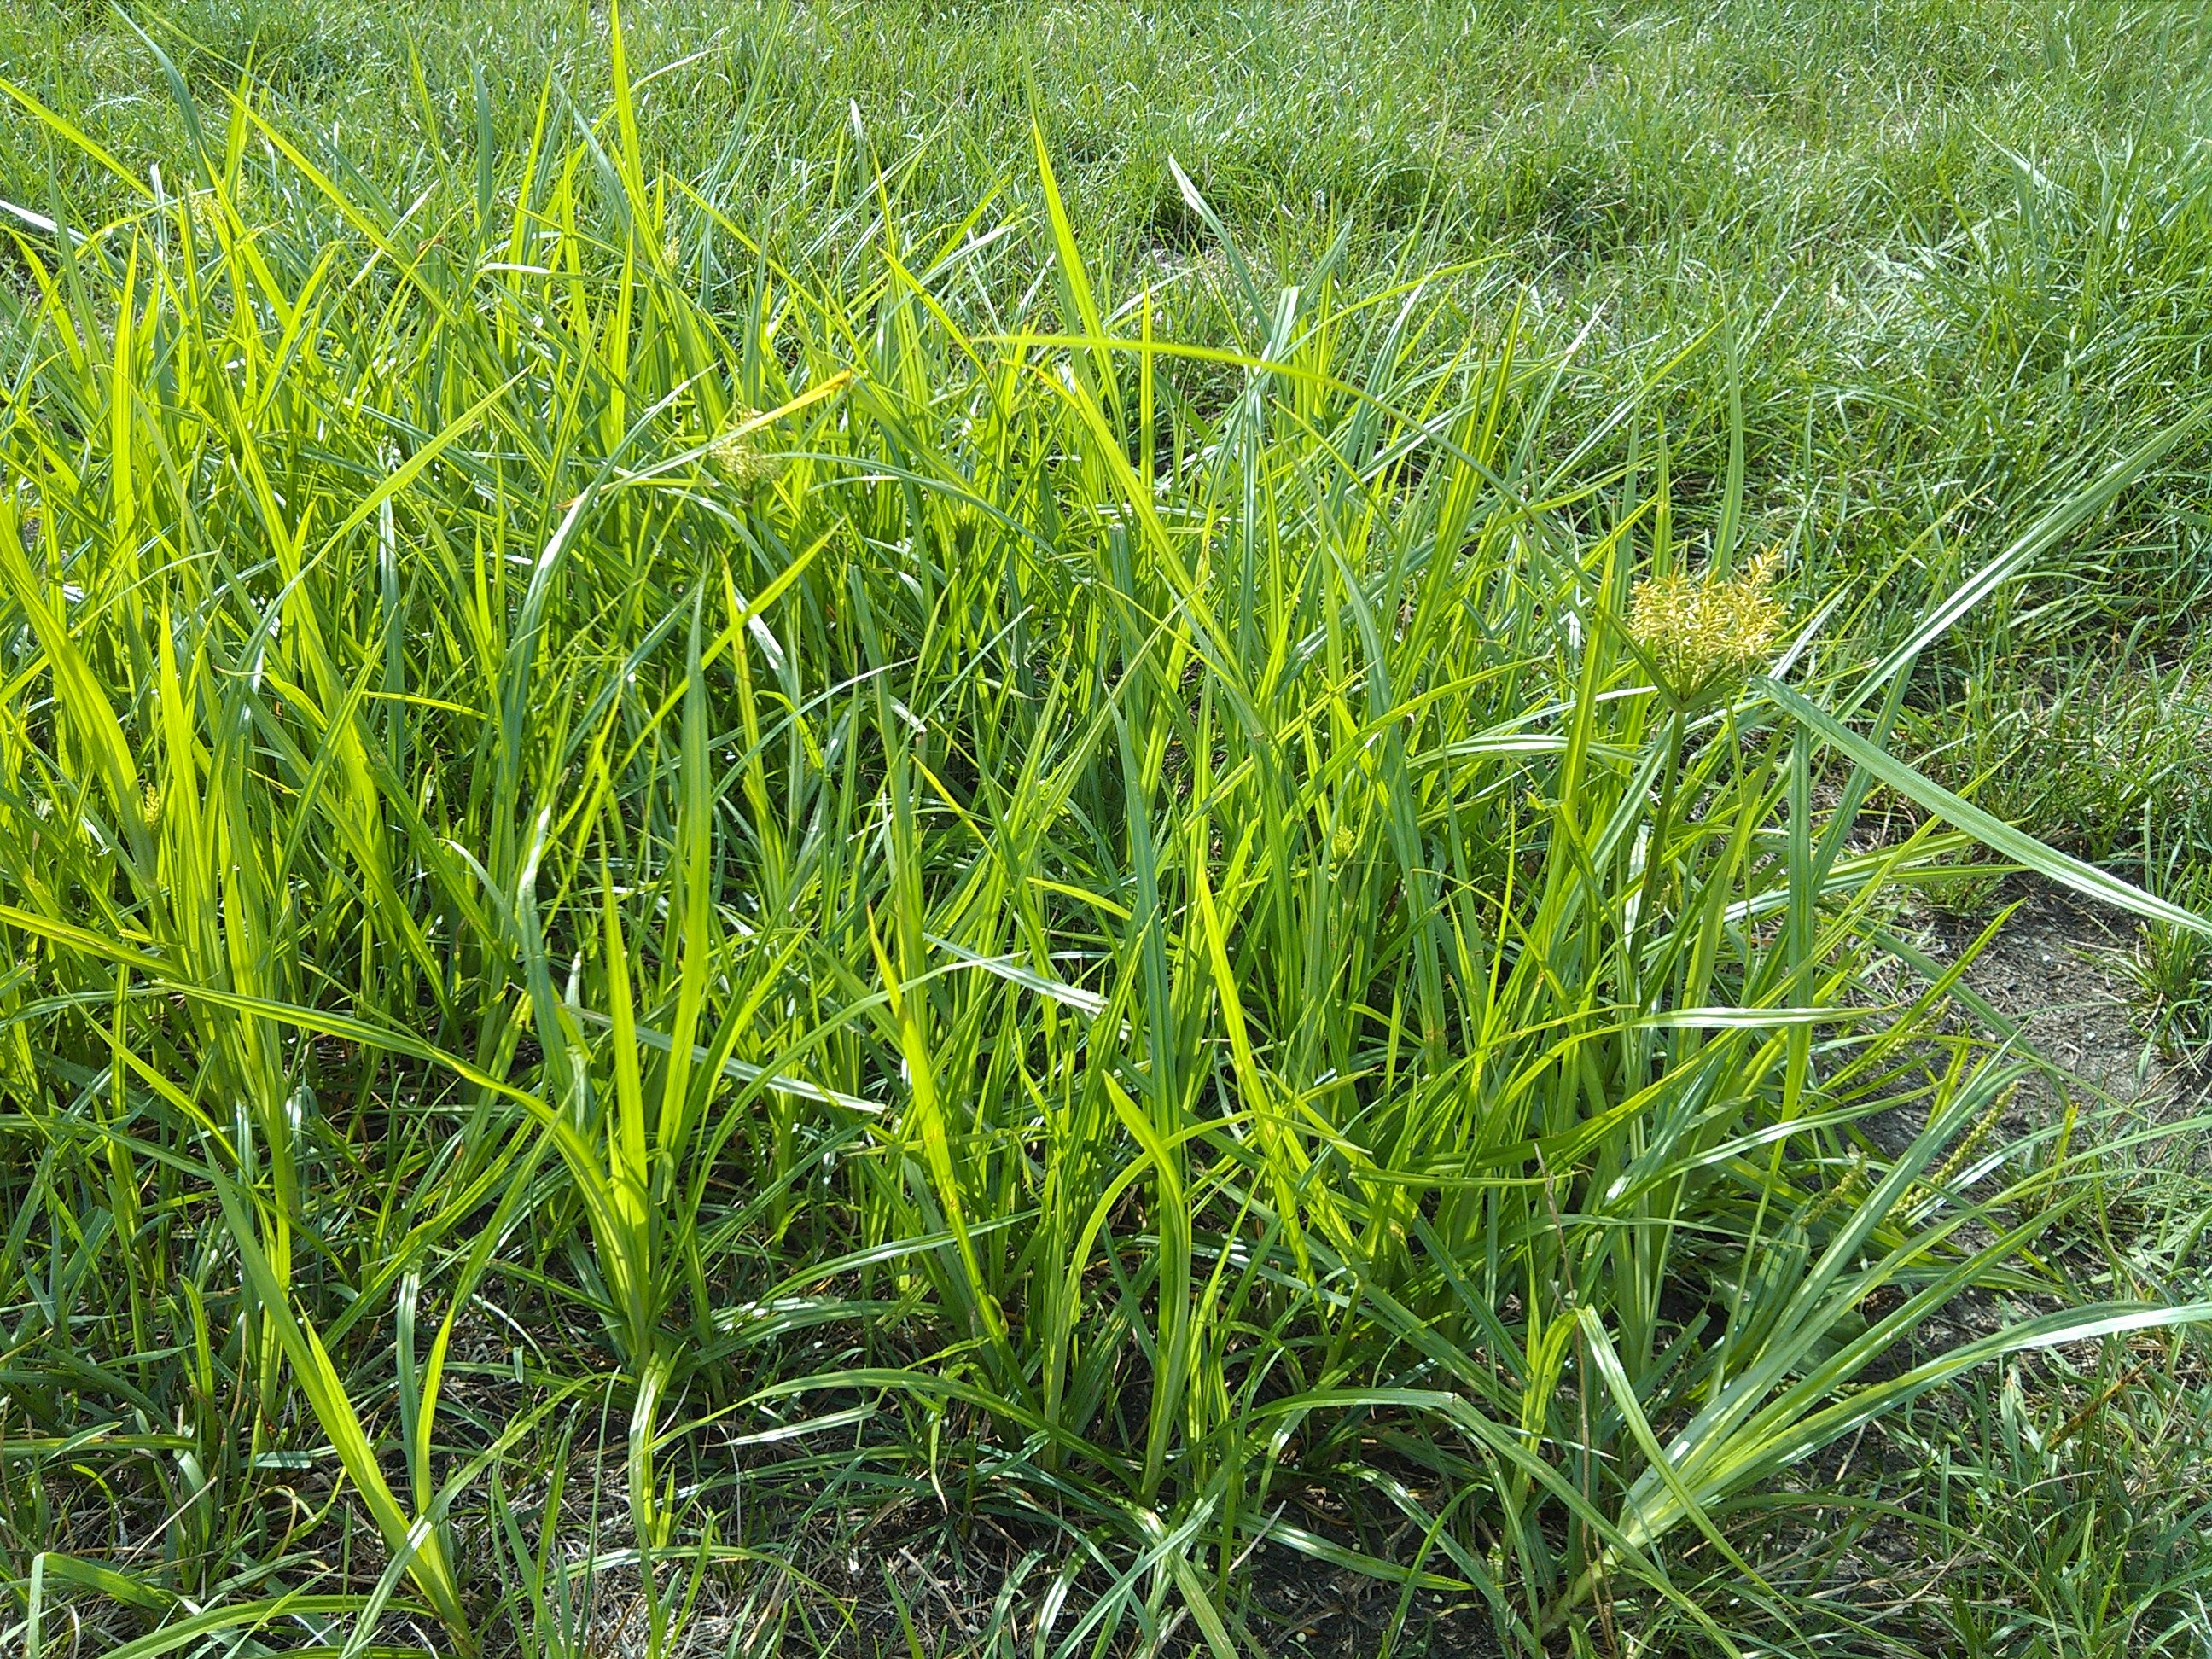 Nutsedge Is A Pesky Weed Like Perennial Plant That Can Reek Havoc On Your Lawn Learn More About This And The Best Ways To Rid Of It